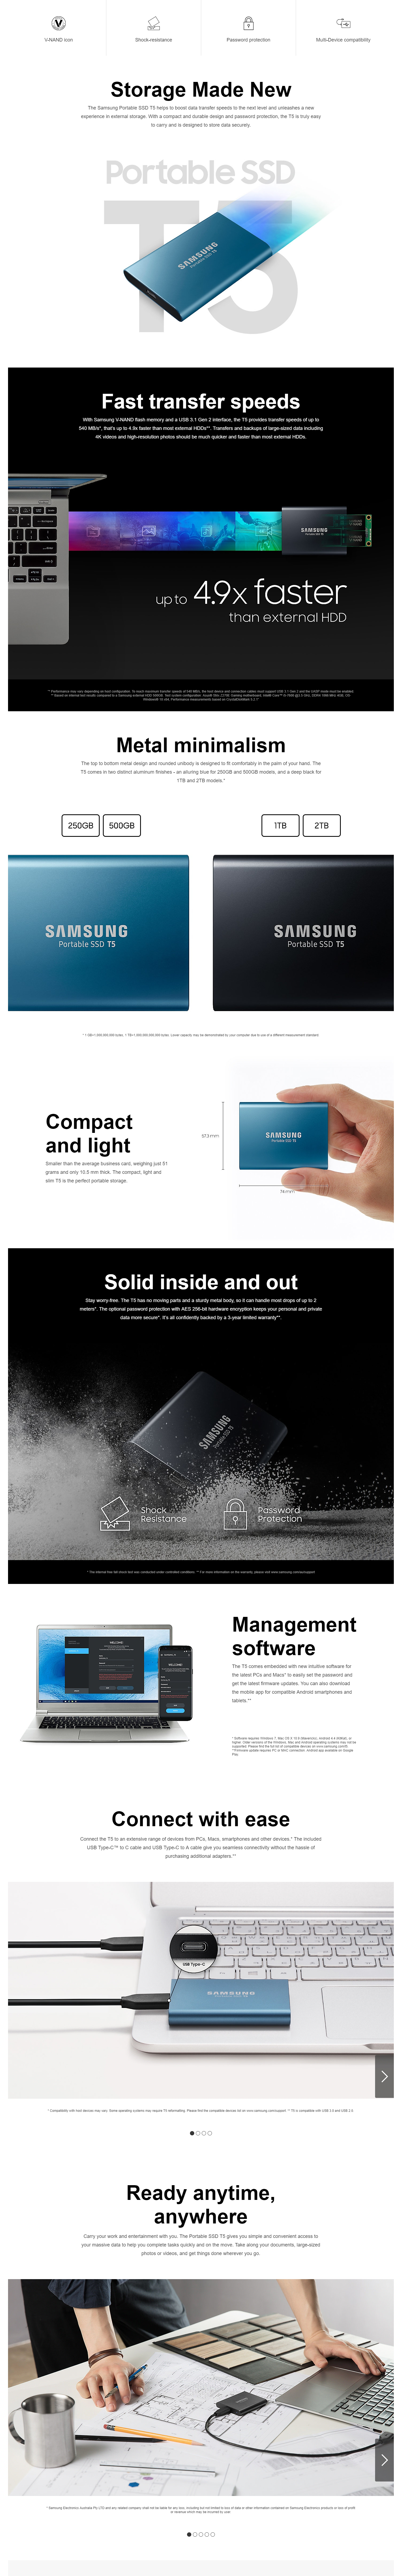 A large marketing image providing additional information about the product Samsung T5 500GB USB3.1 Blue Portable SSD - Additional alt info not provided